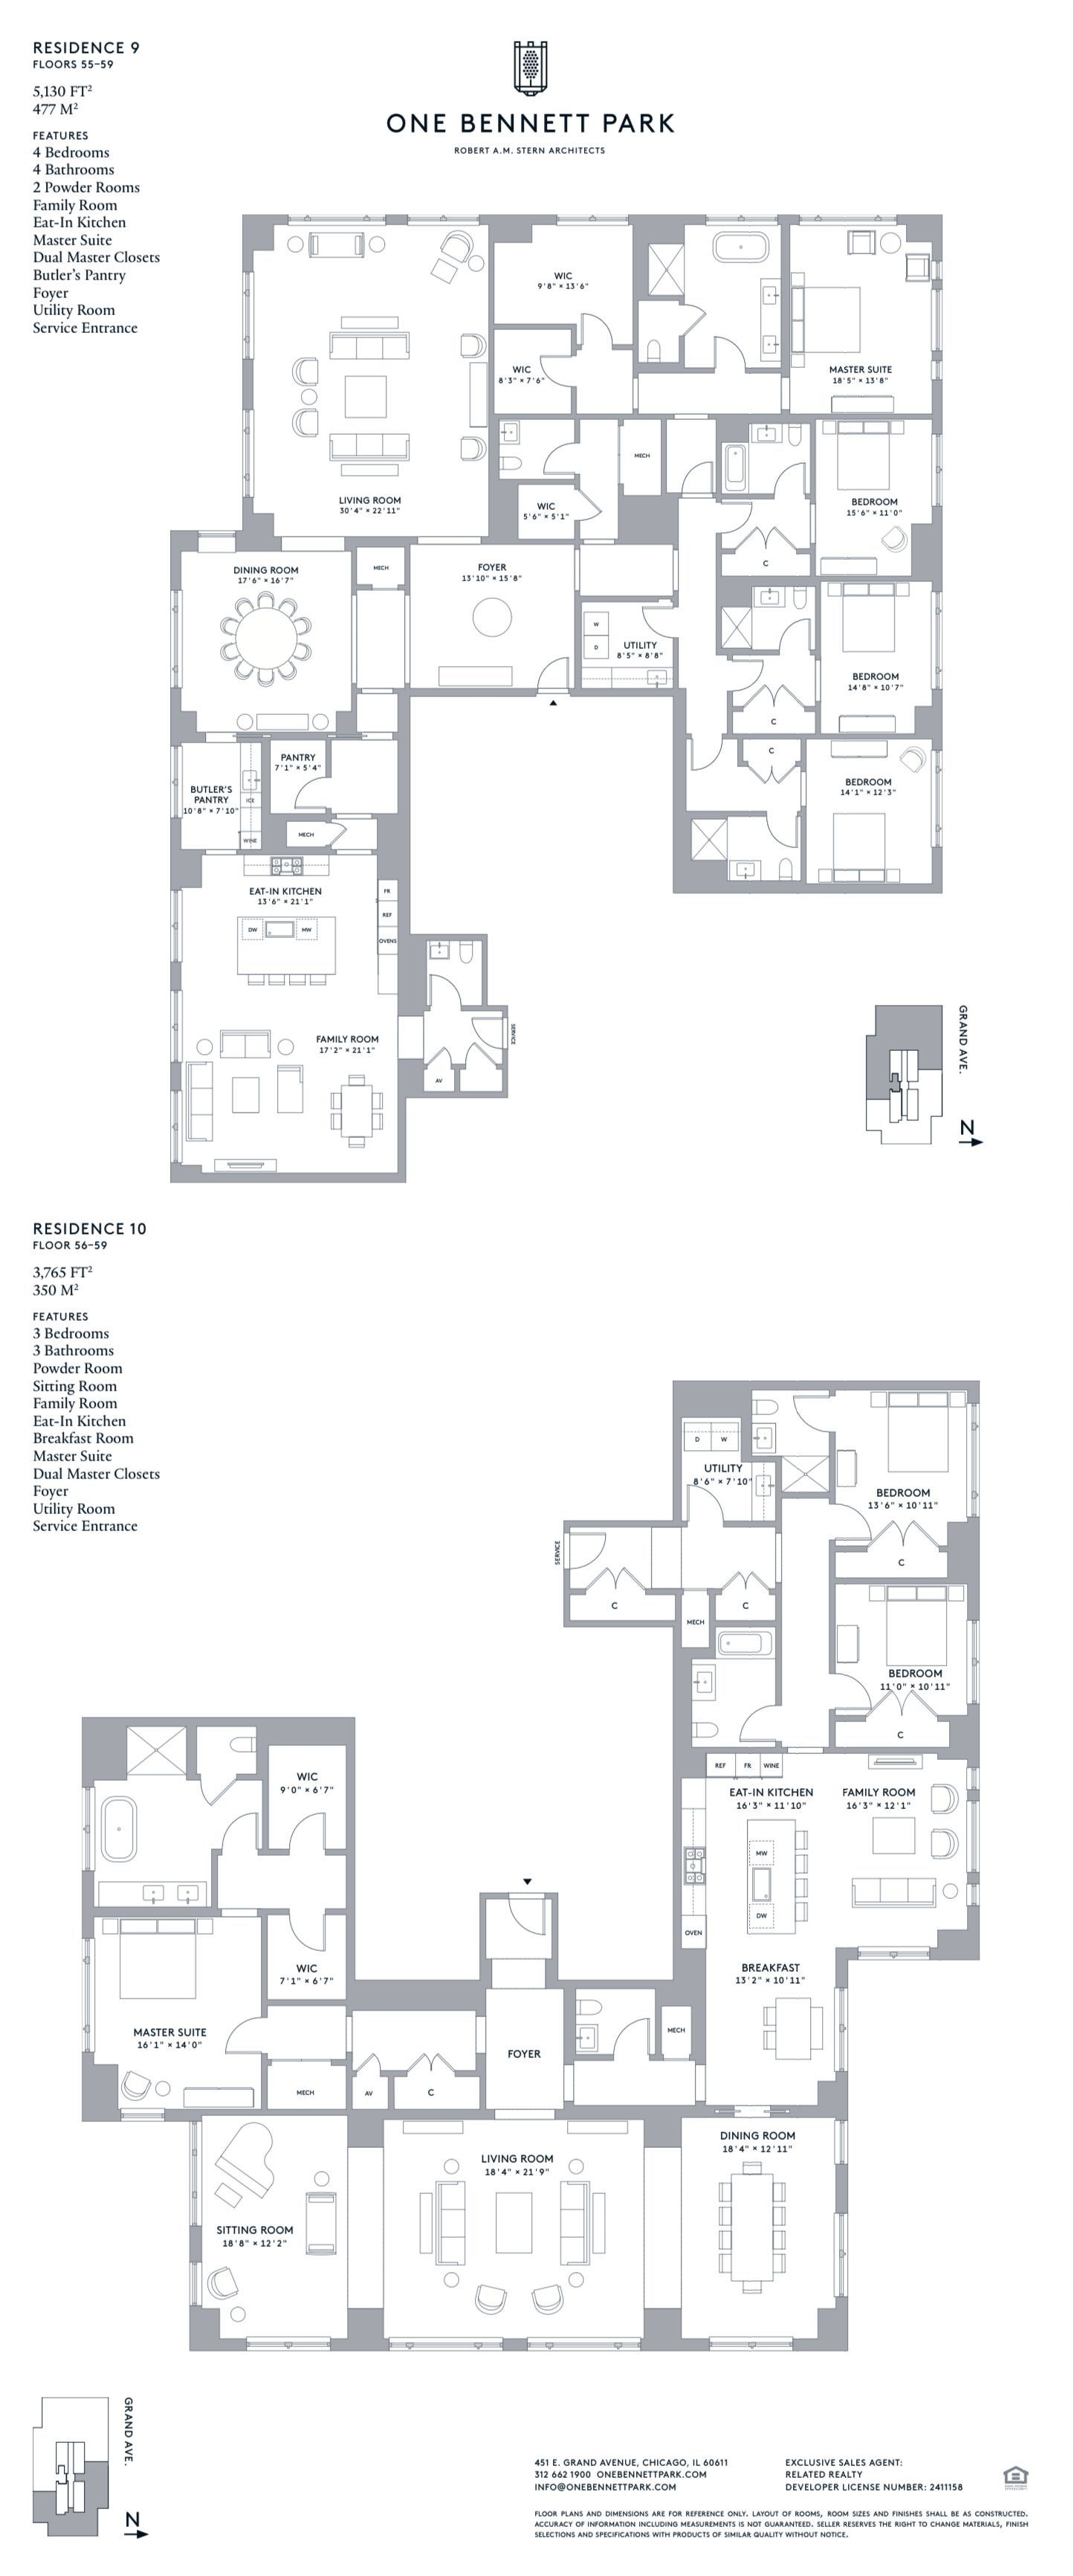 One Bennett Park In Streeterville Chicago Residences 9 10 Apartment Floor Plans House Floor Plans House Layouts